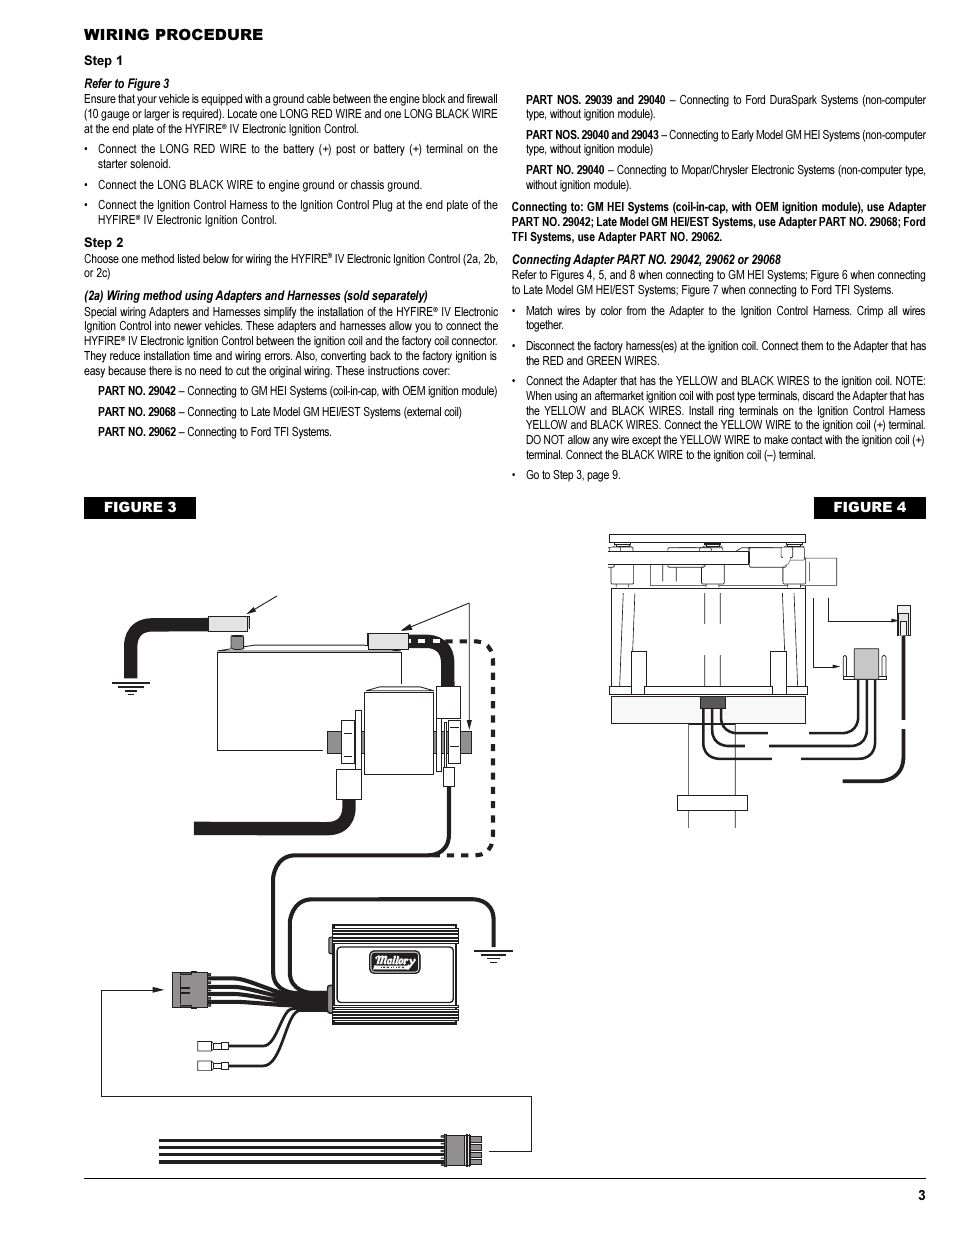 hight resolution of wiring procedure figure 4 12v battery mallory ignitionwiring procedure figure 4